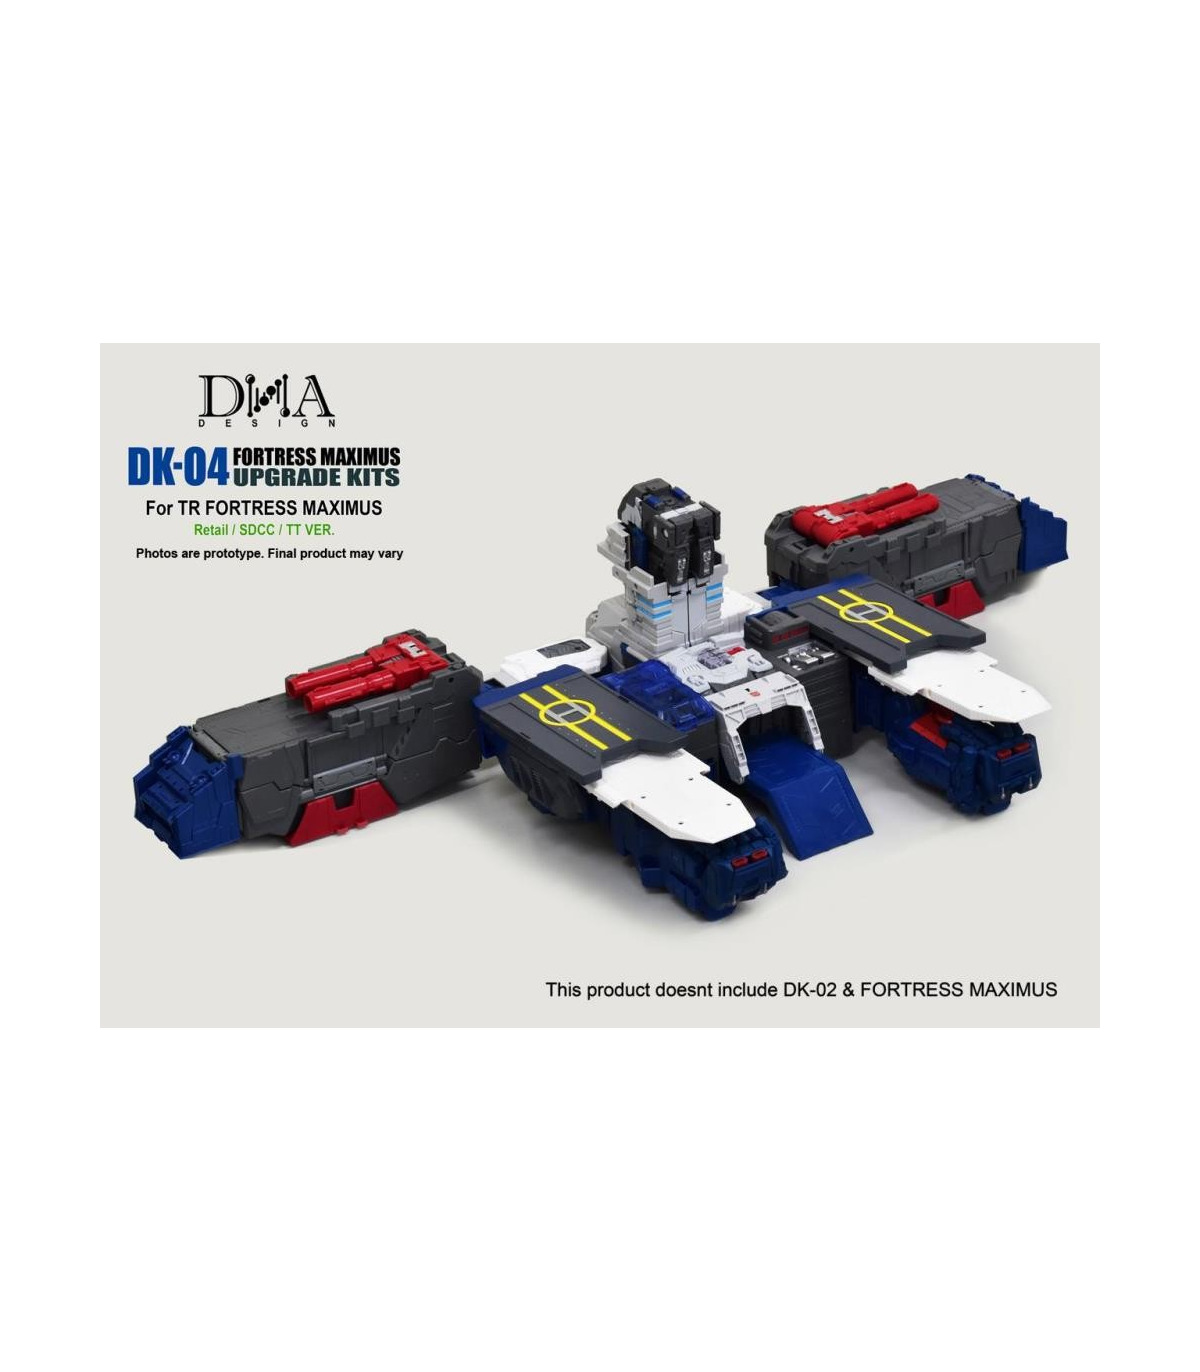 DNA DK-04 Upgrade Kits for TR Fortress Maximus Transformered Robot Kit Toys